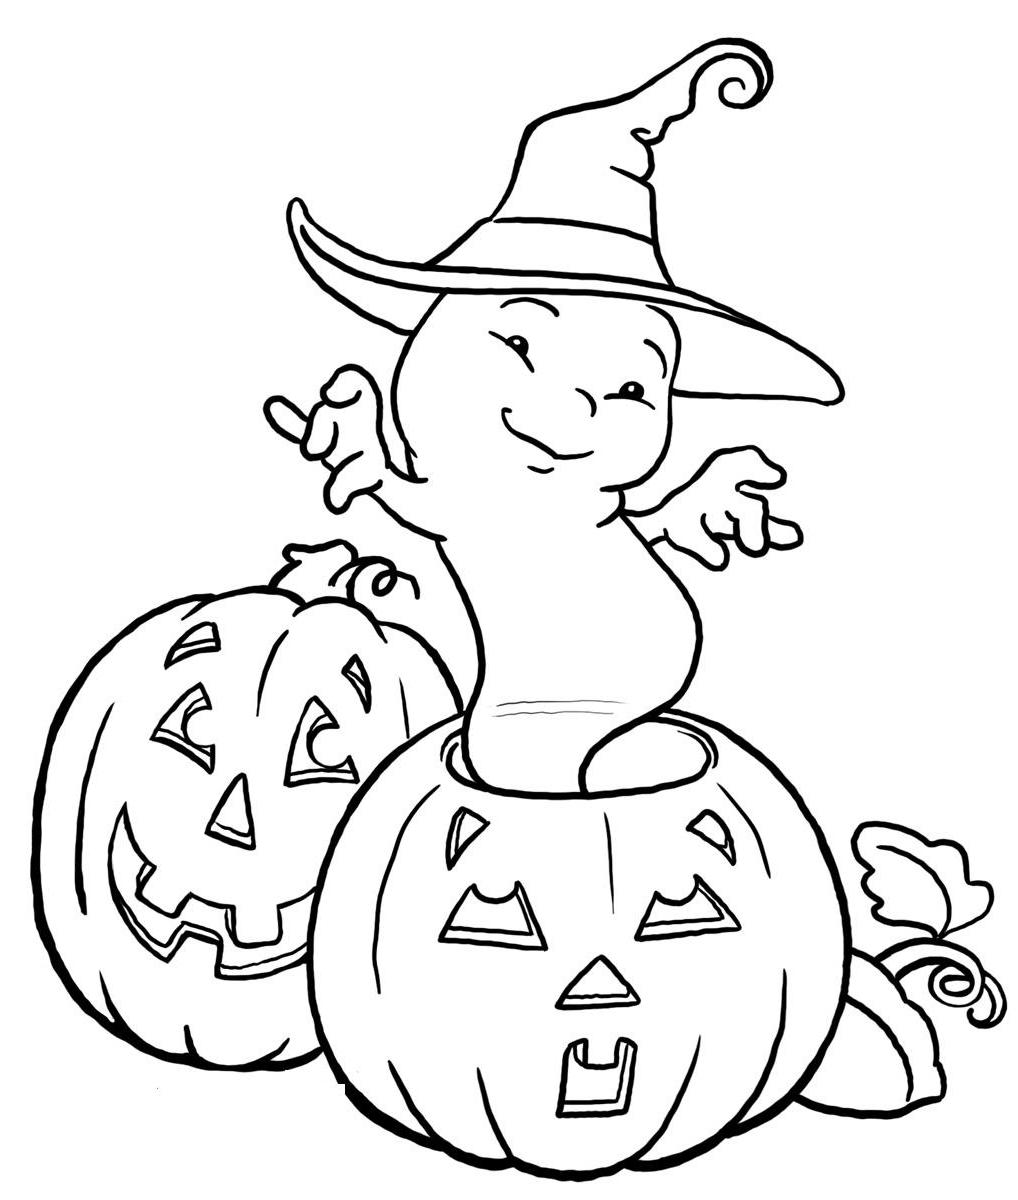 Ghost Kids Coloring Pages - Coloring Home